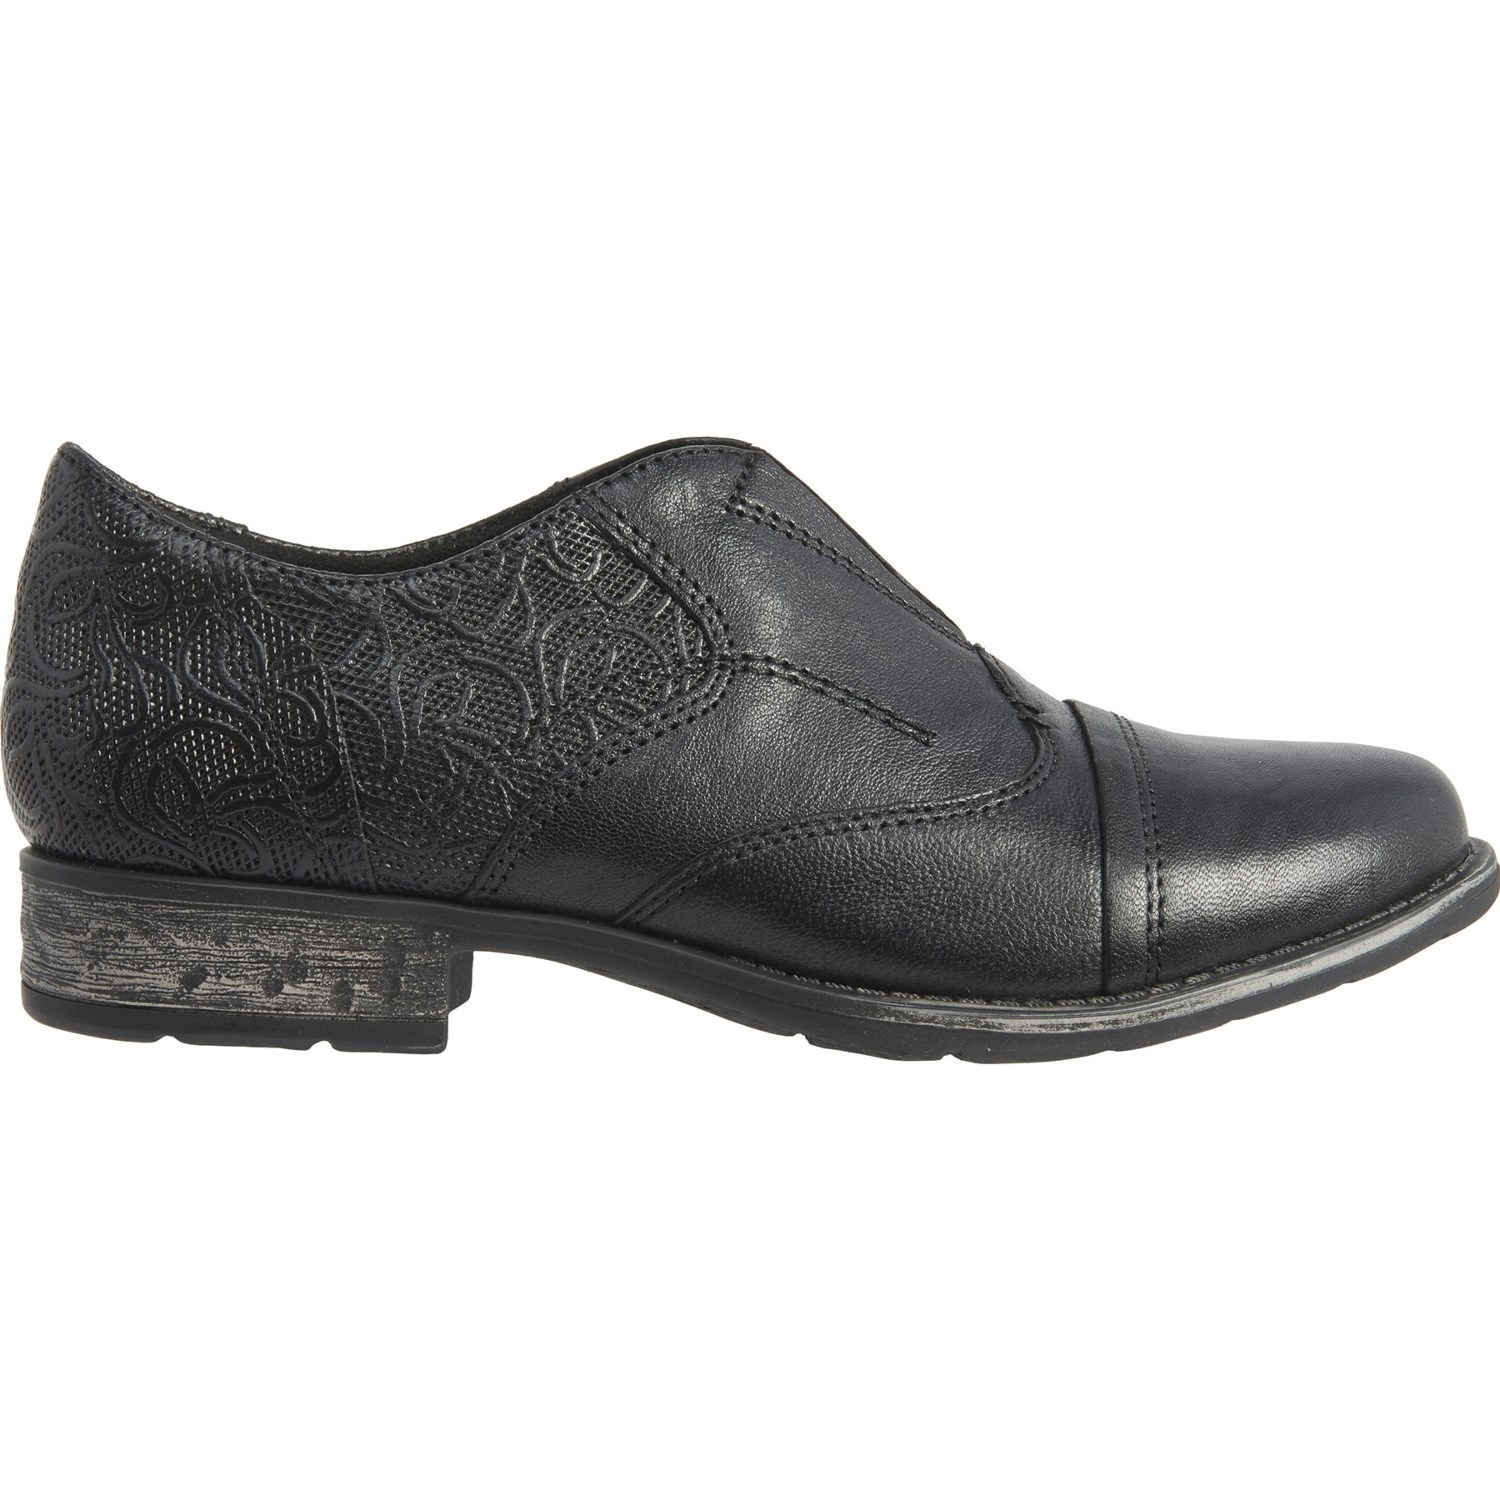 Earth Blythe Shoes (For Women) - Save 71%